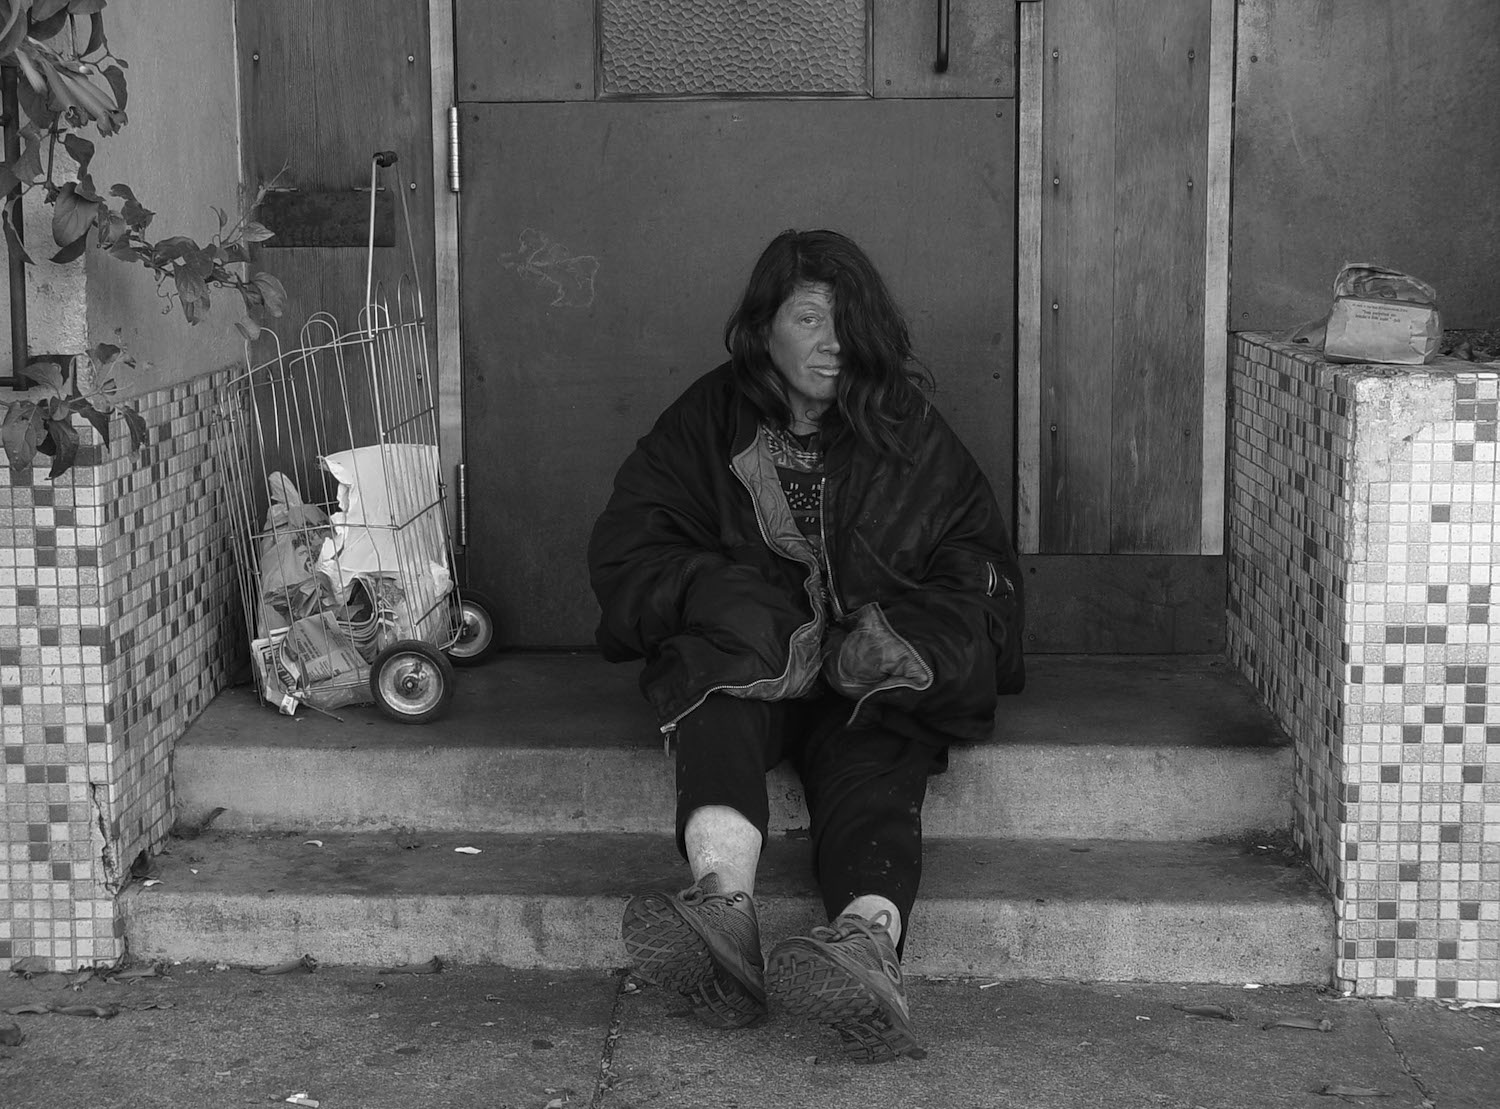 Homeless woman in San Francisco, CA. Photo by Franco Folini